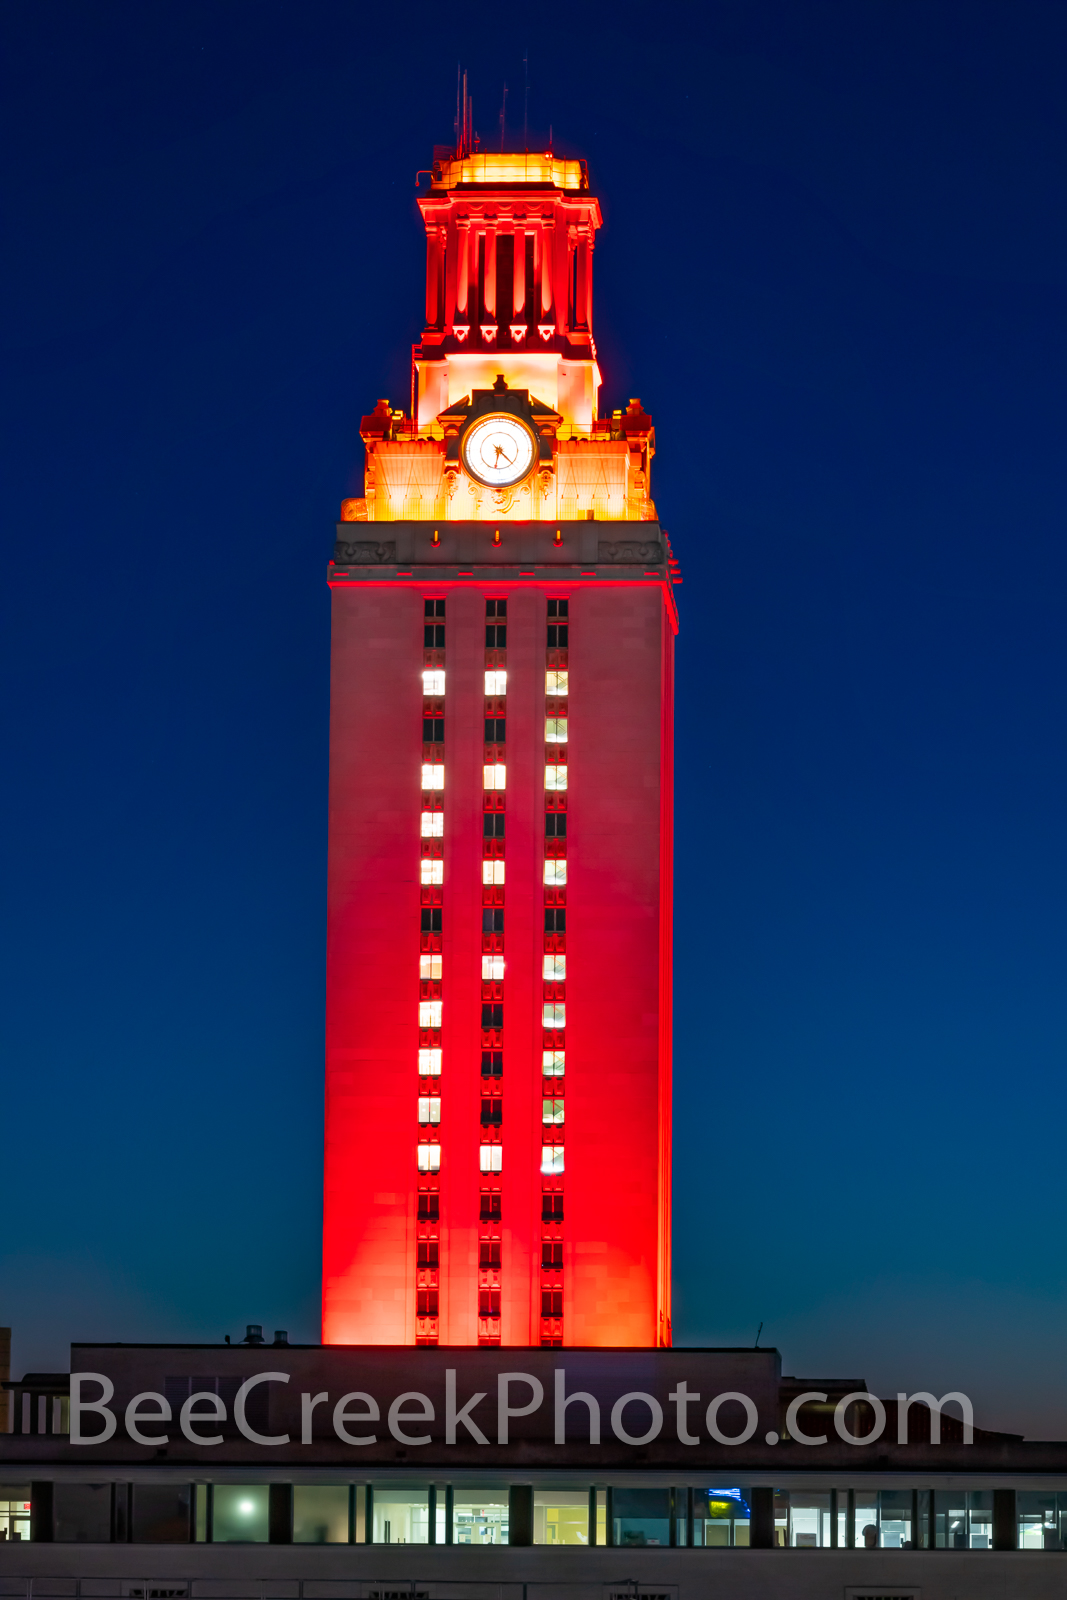 U T Tower 2020 Vertical - The U T Tower was in full burnt orange color for the graduation class of 2020 in downtown Austin Texas...